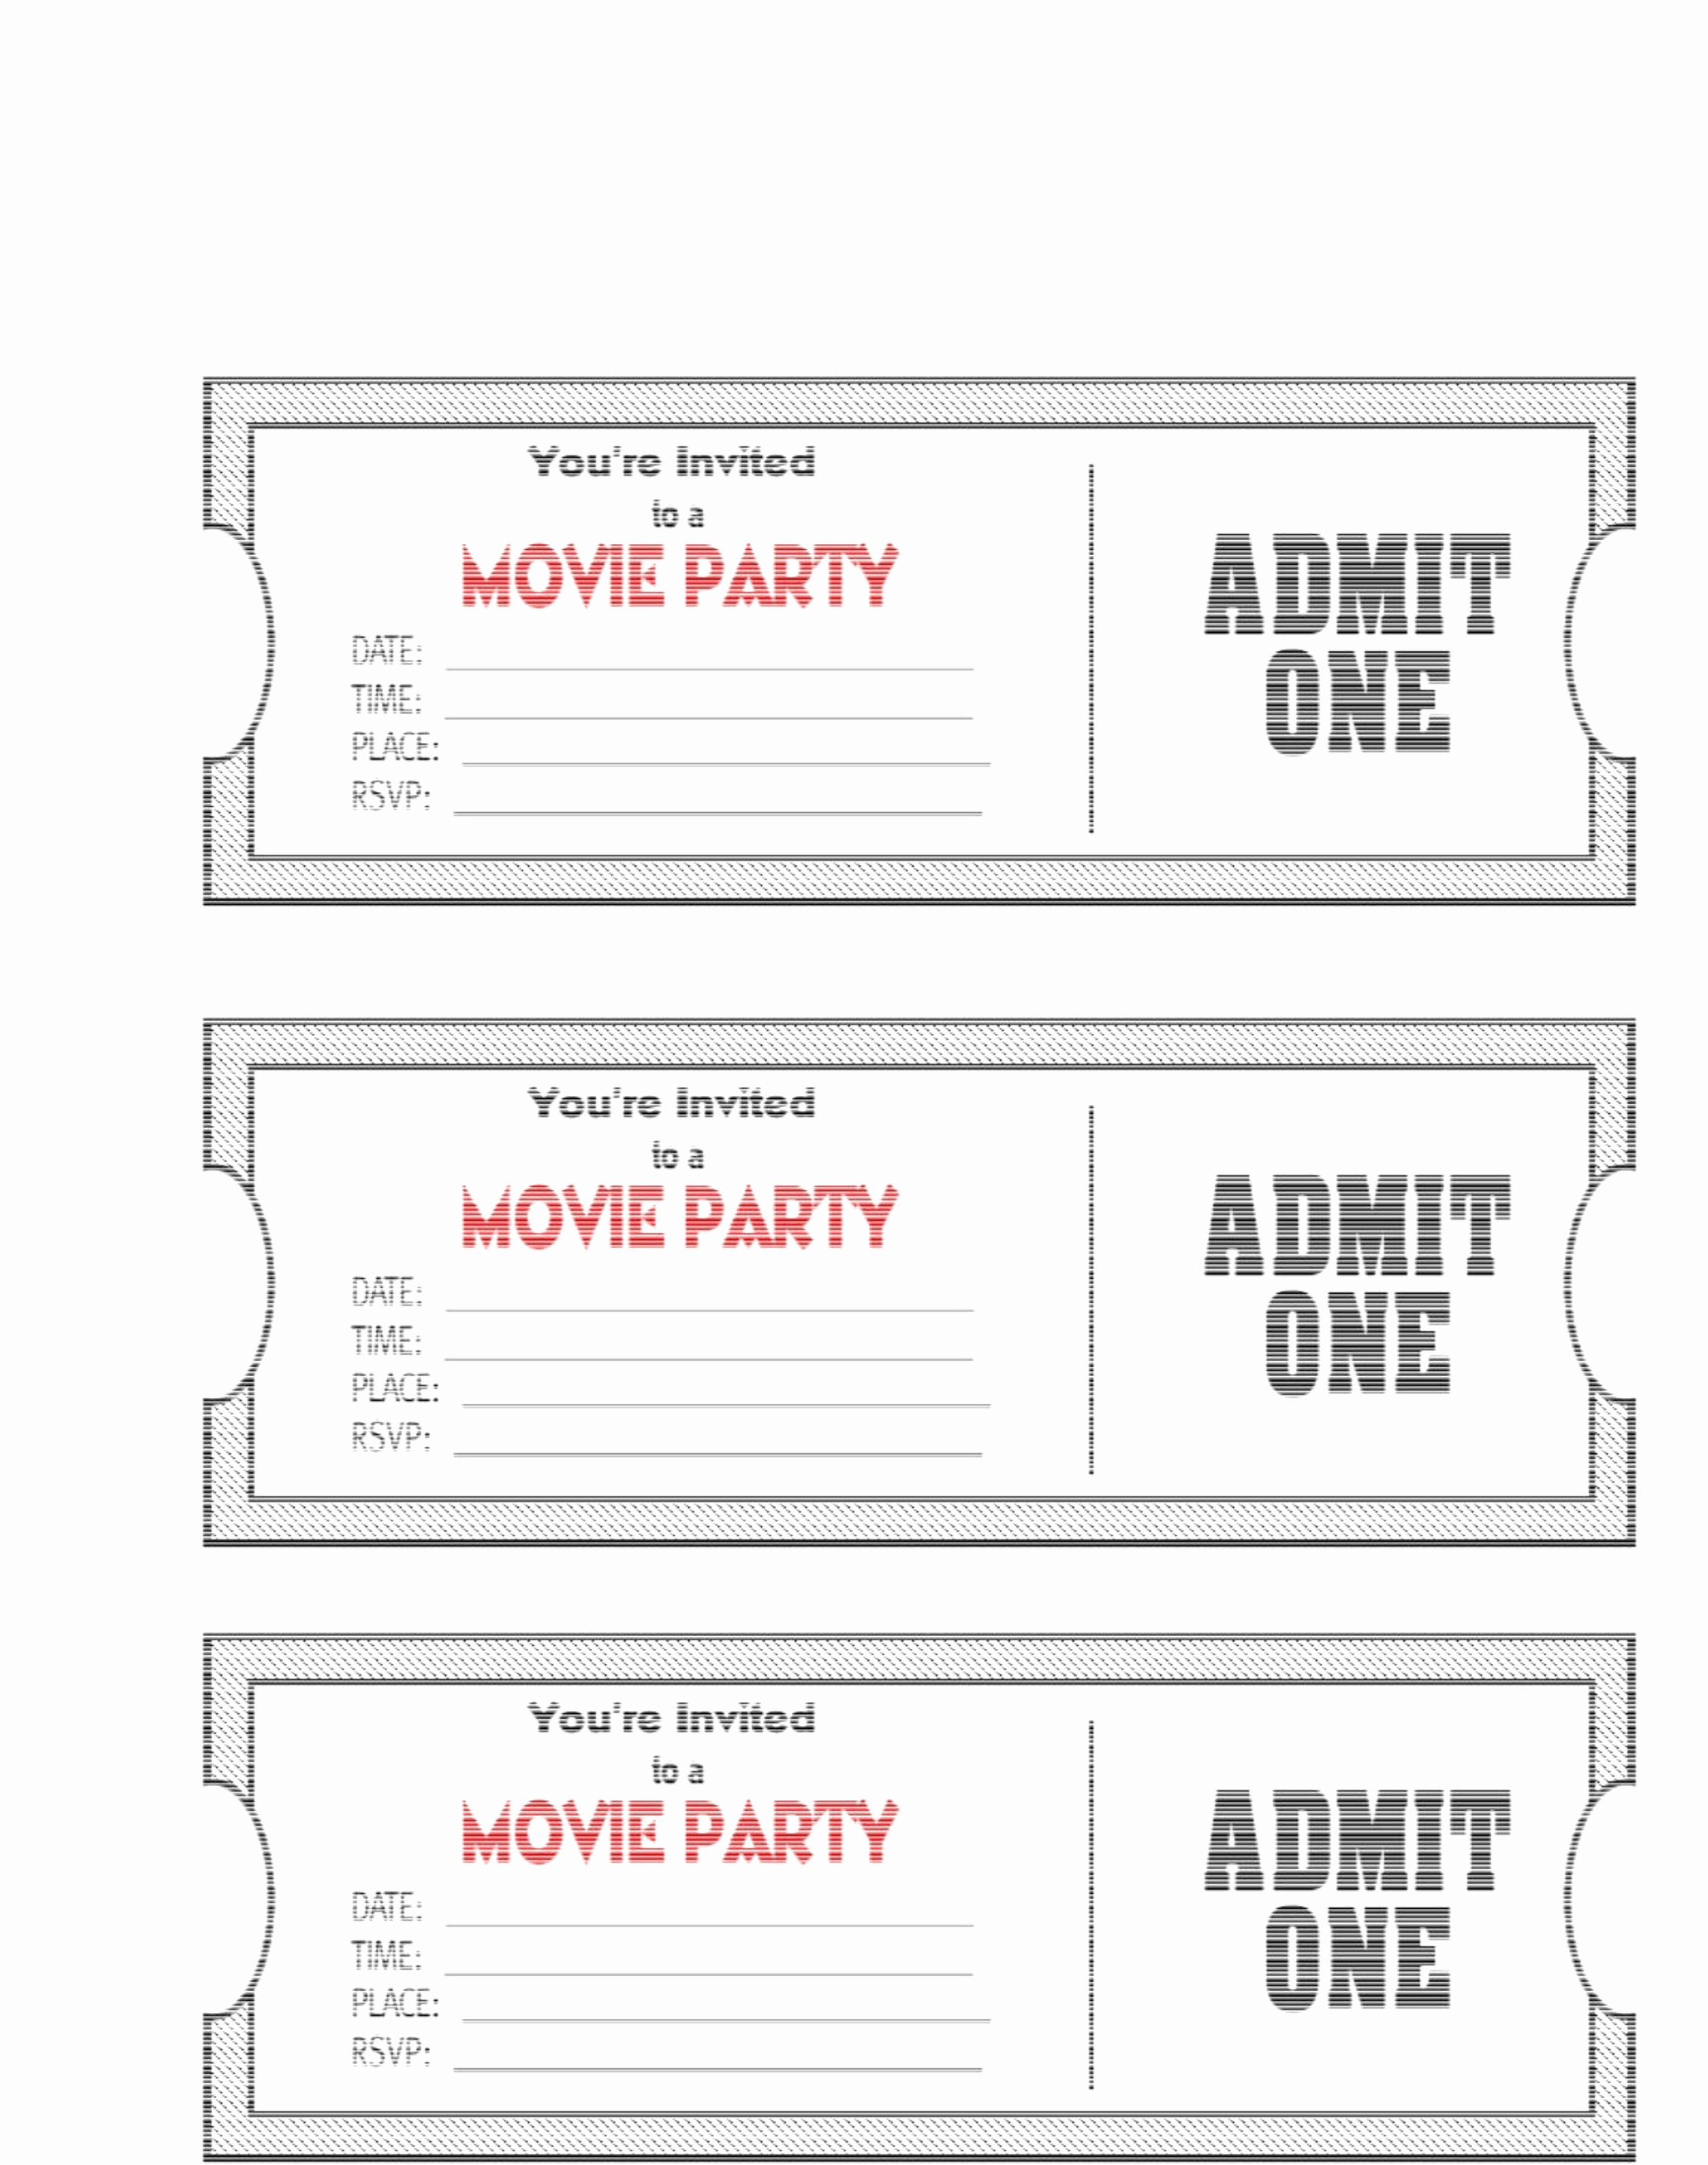 Admit One Ticket Template Printable Inspirational Free Printable Movie Ticket Invitations